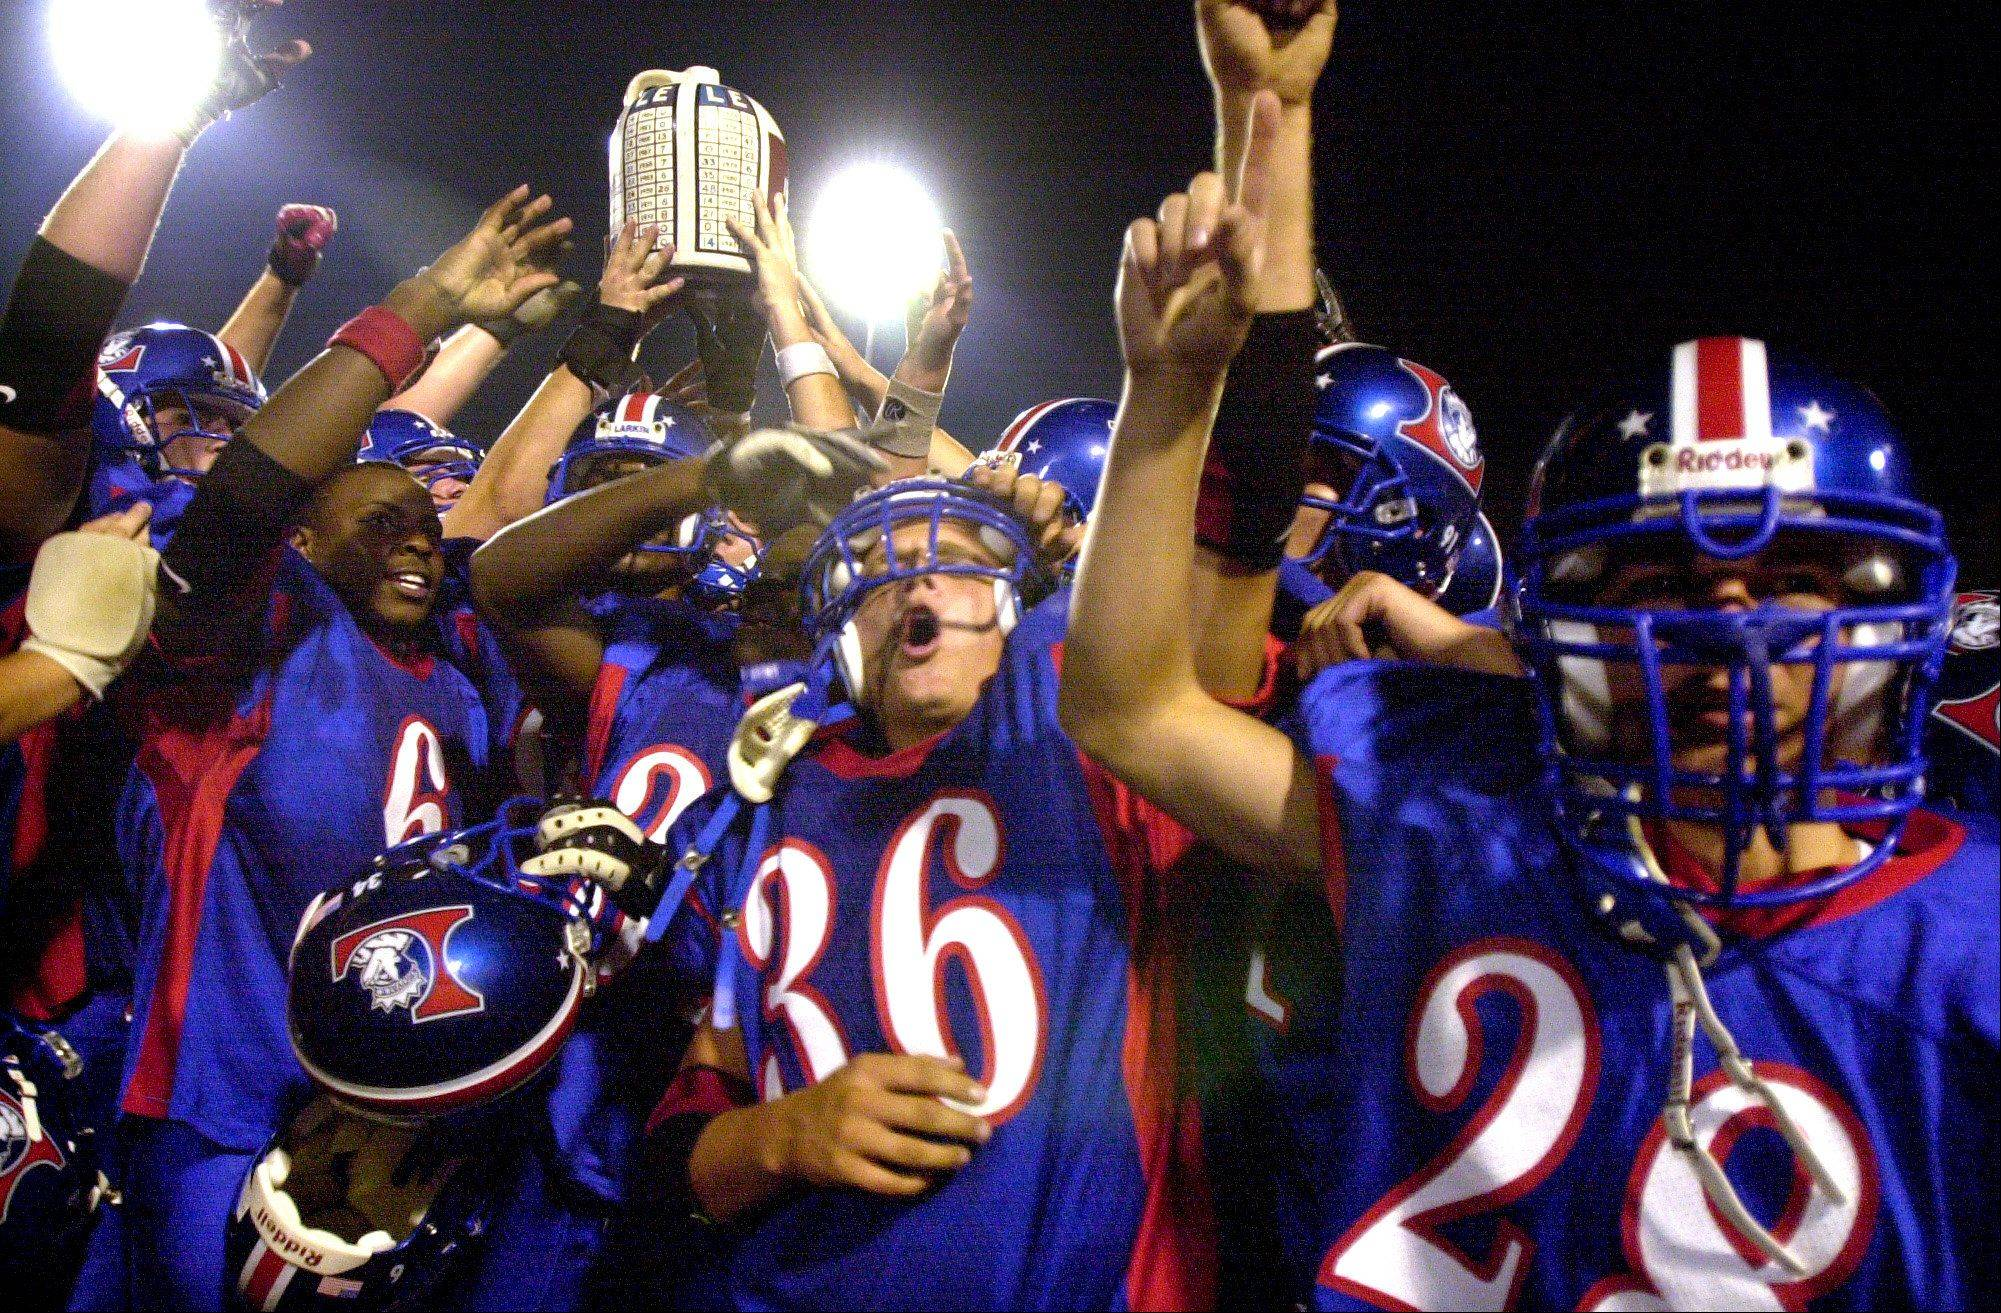 The Larkin Royals hoist the town jug after defeating the Elgin Maroons in this September, 2002 Daily Herald file photo. The Town Jug game returns to Friday night this season for the first time since that 2002 game.